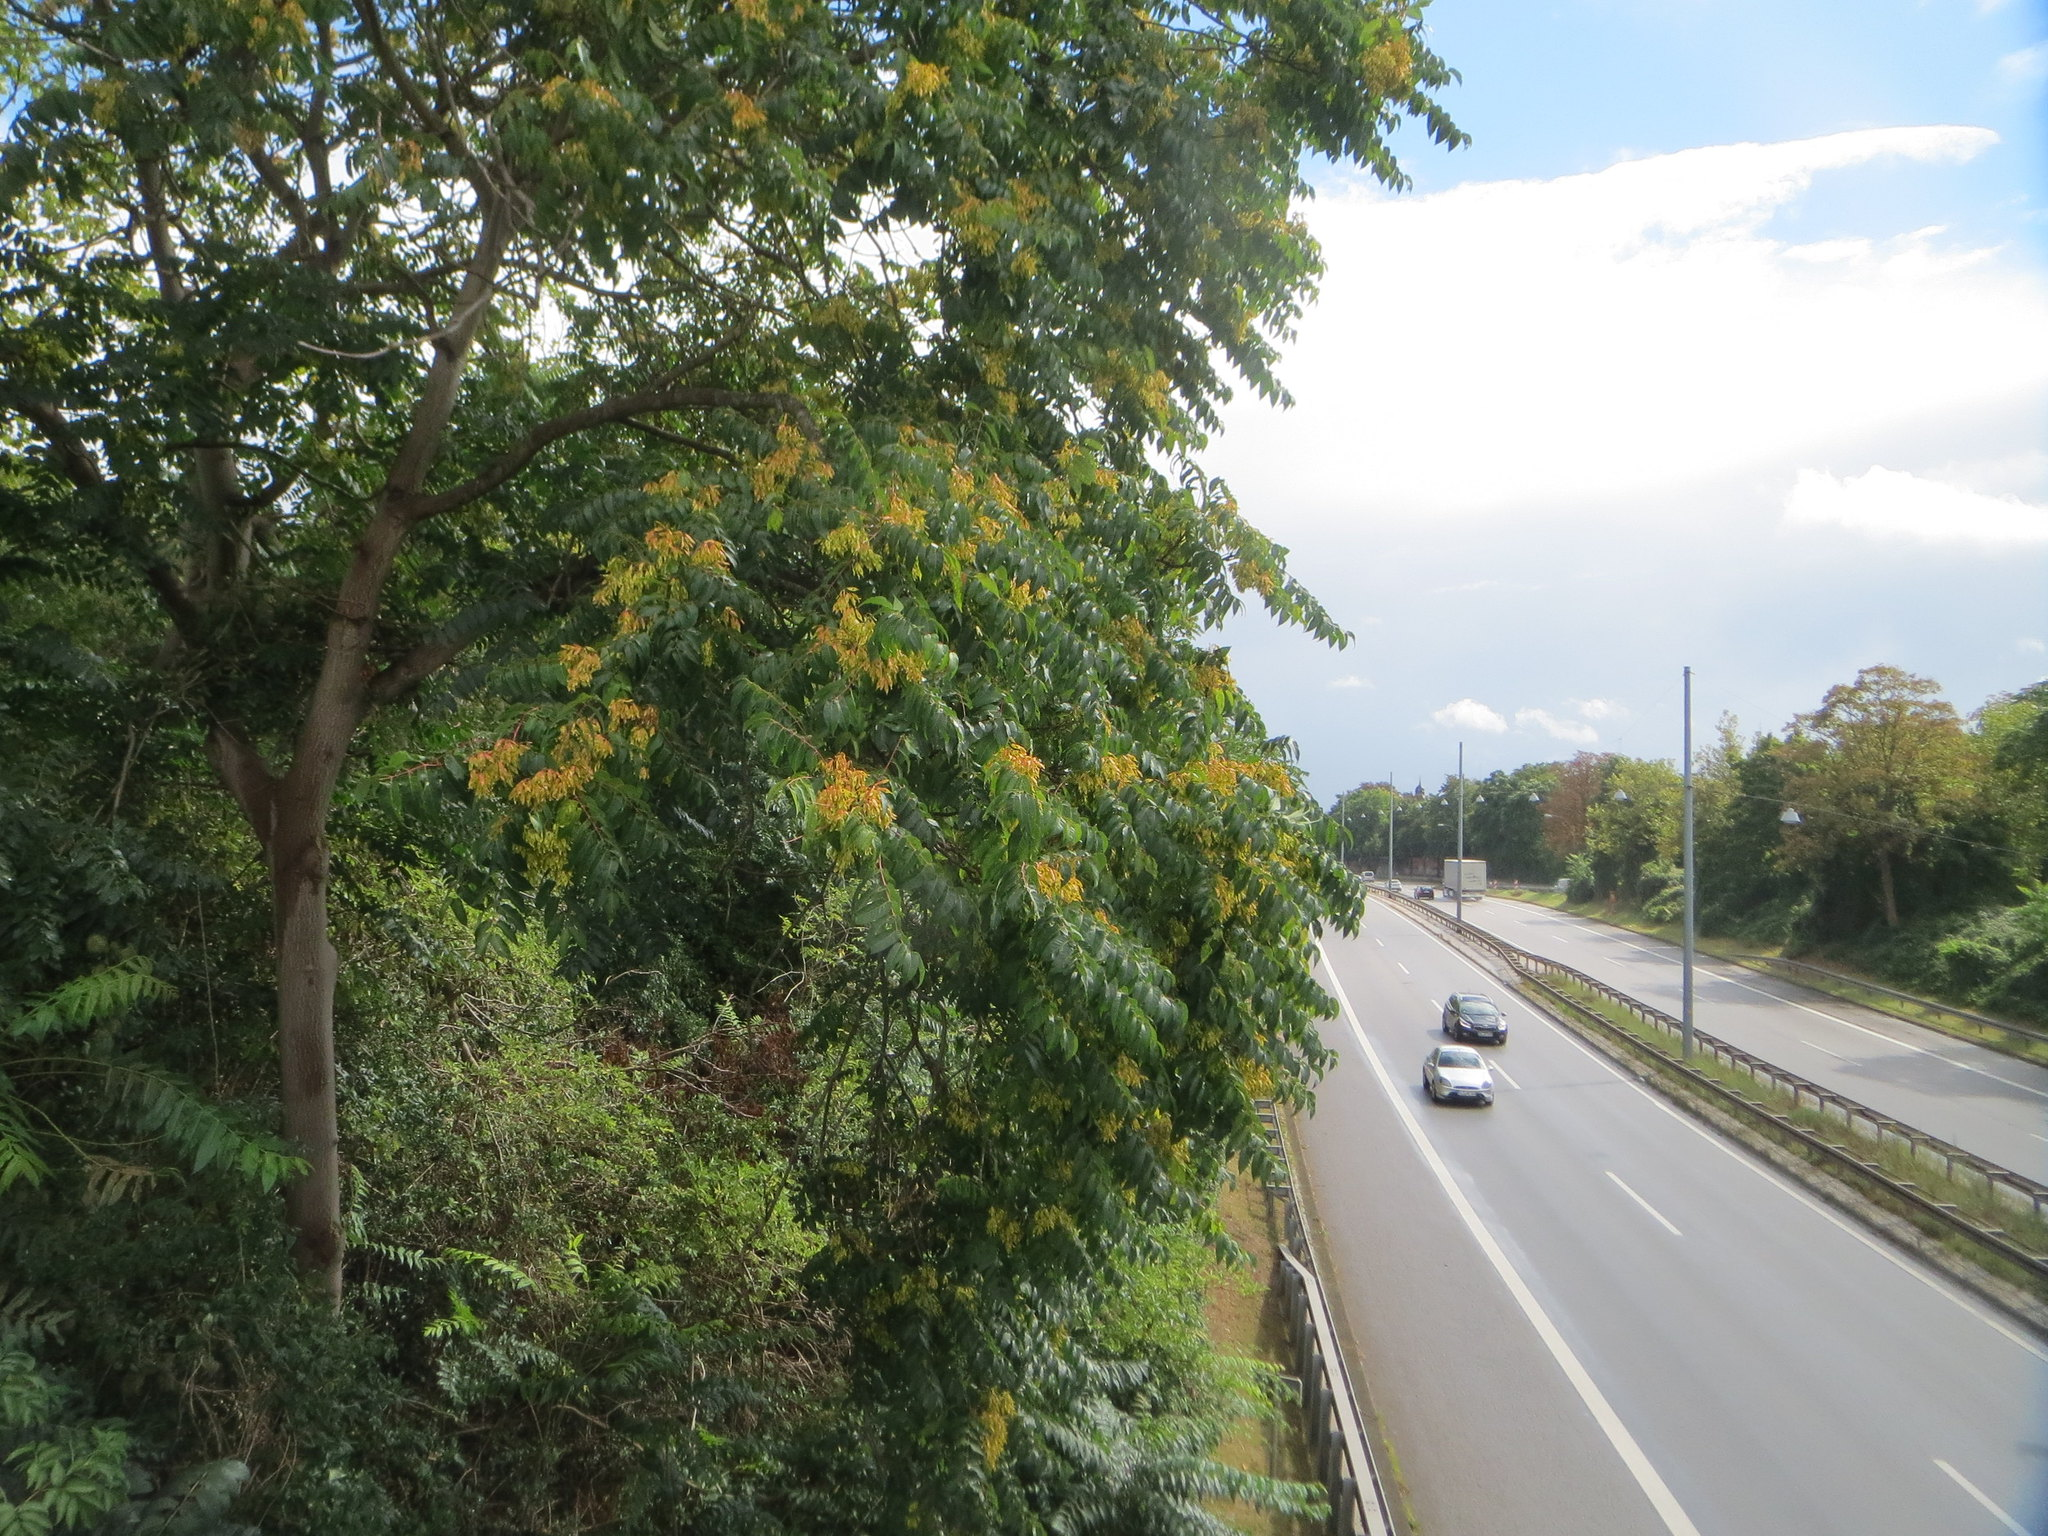 Tree-of-heaven, Ailanthus altissima, growing along a roadside. Photo by Andreas Rockstein CC2.0.